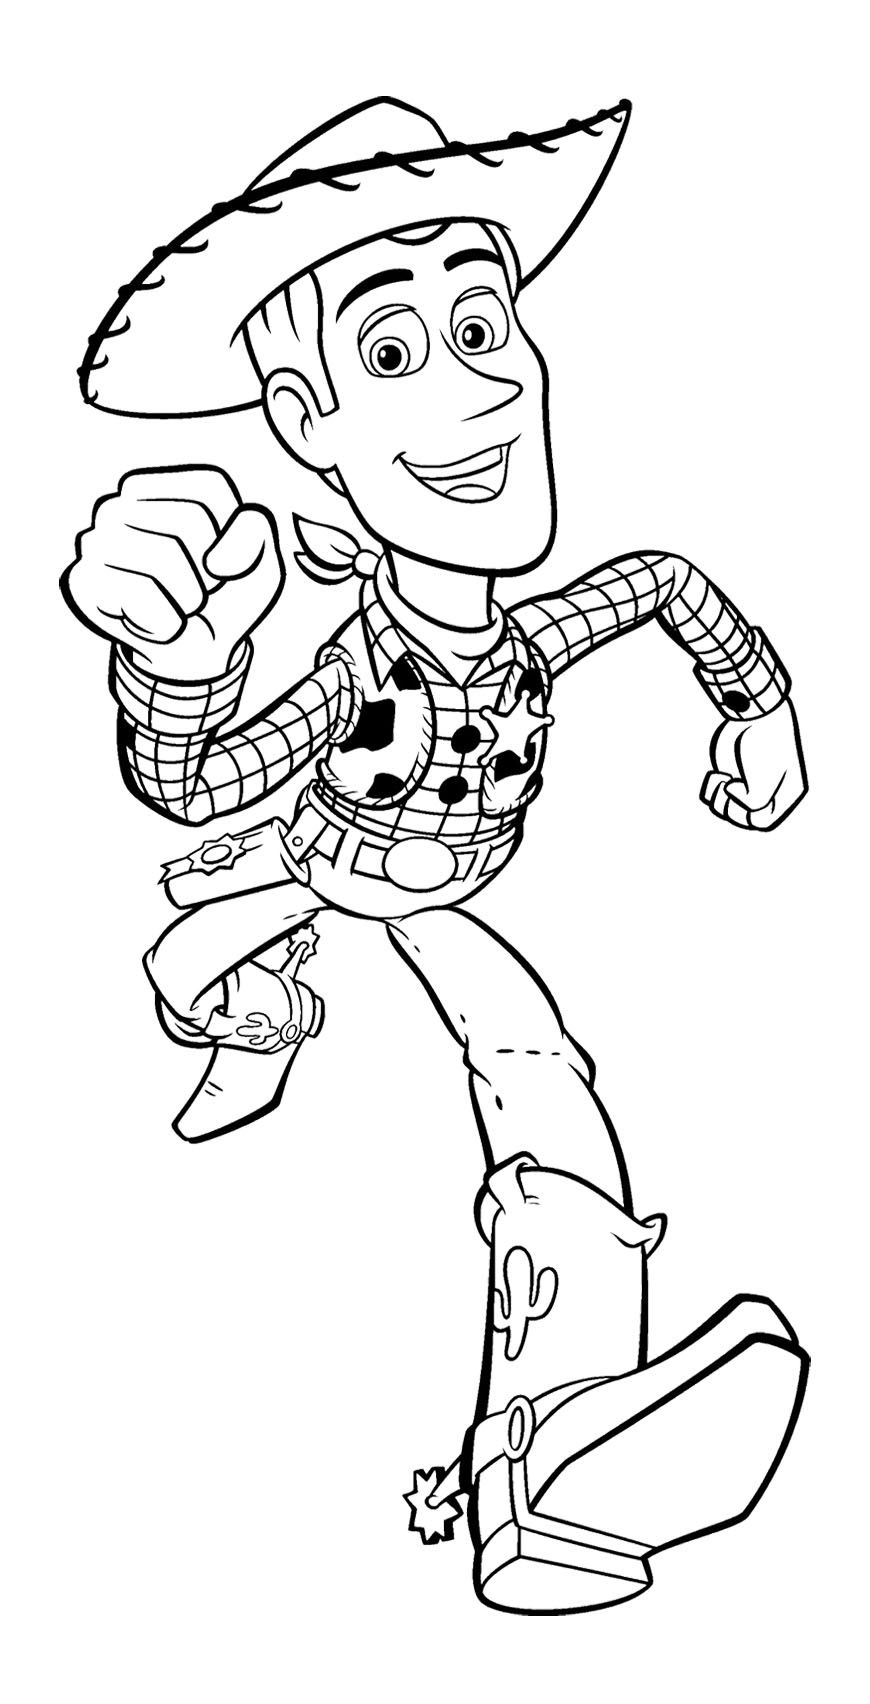 Coloring Page For Kids Toy Story Coloring Pages Disney Coloring Pages Coloring Books